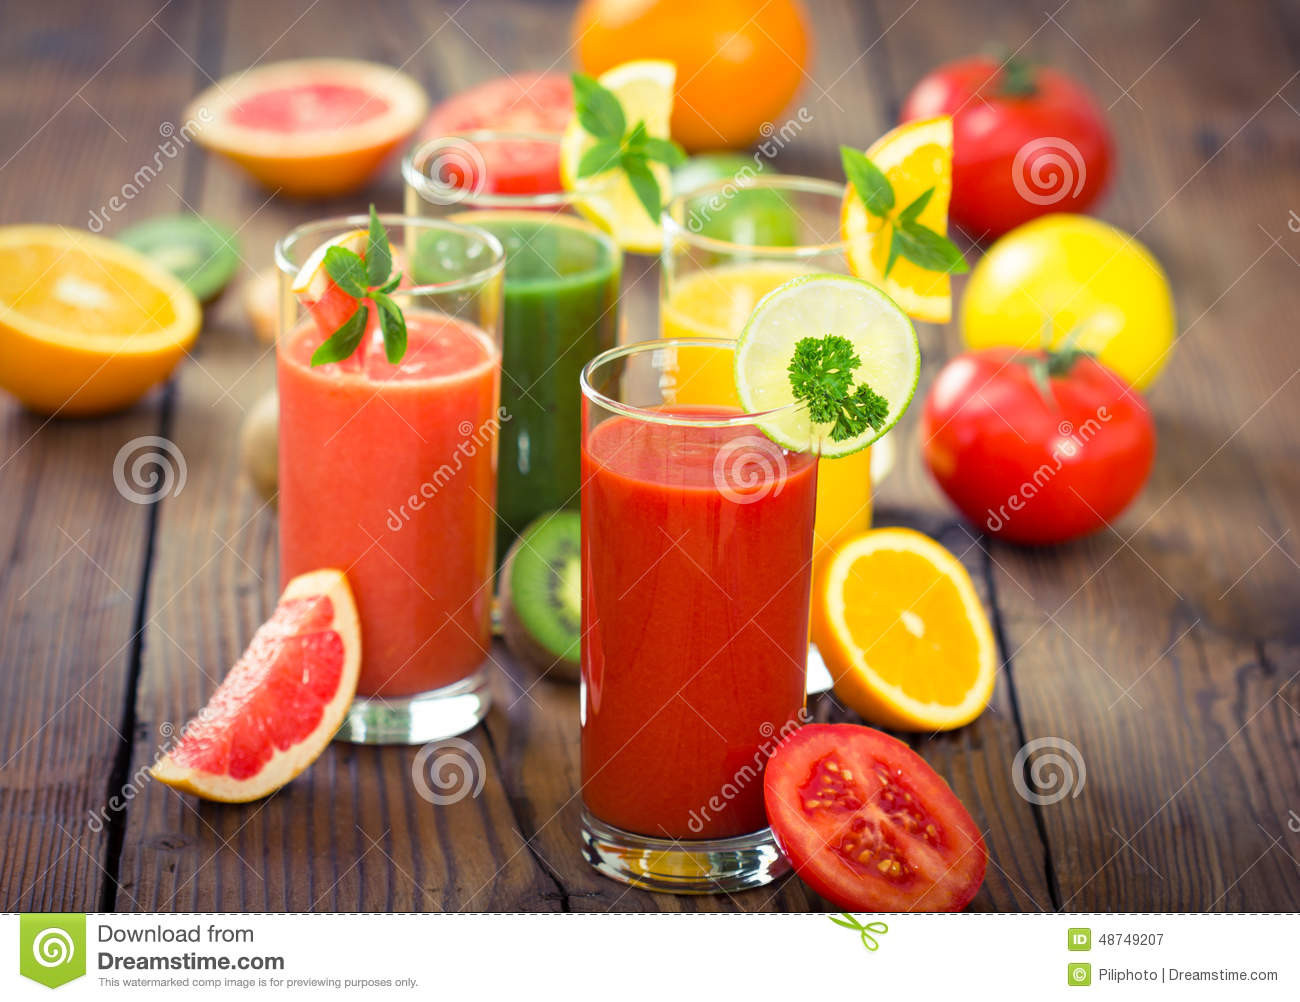 Healthy Fruit And Vegetable Smoothie Recipes  Healthy Fruits And Ve ables Smoothies Stock Image